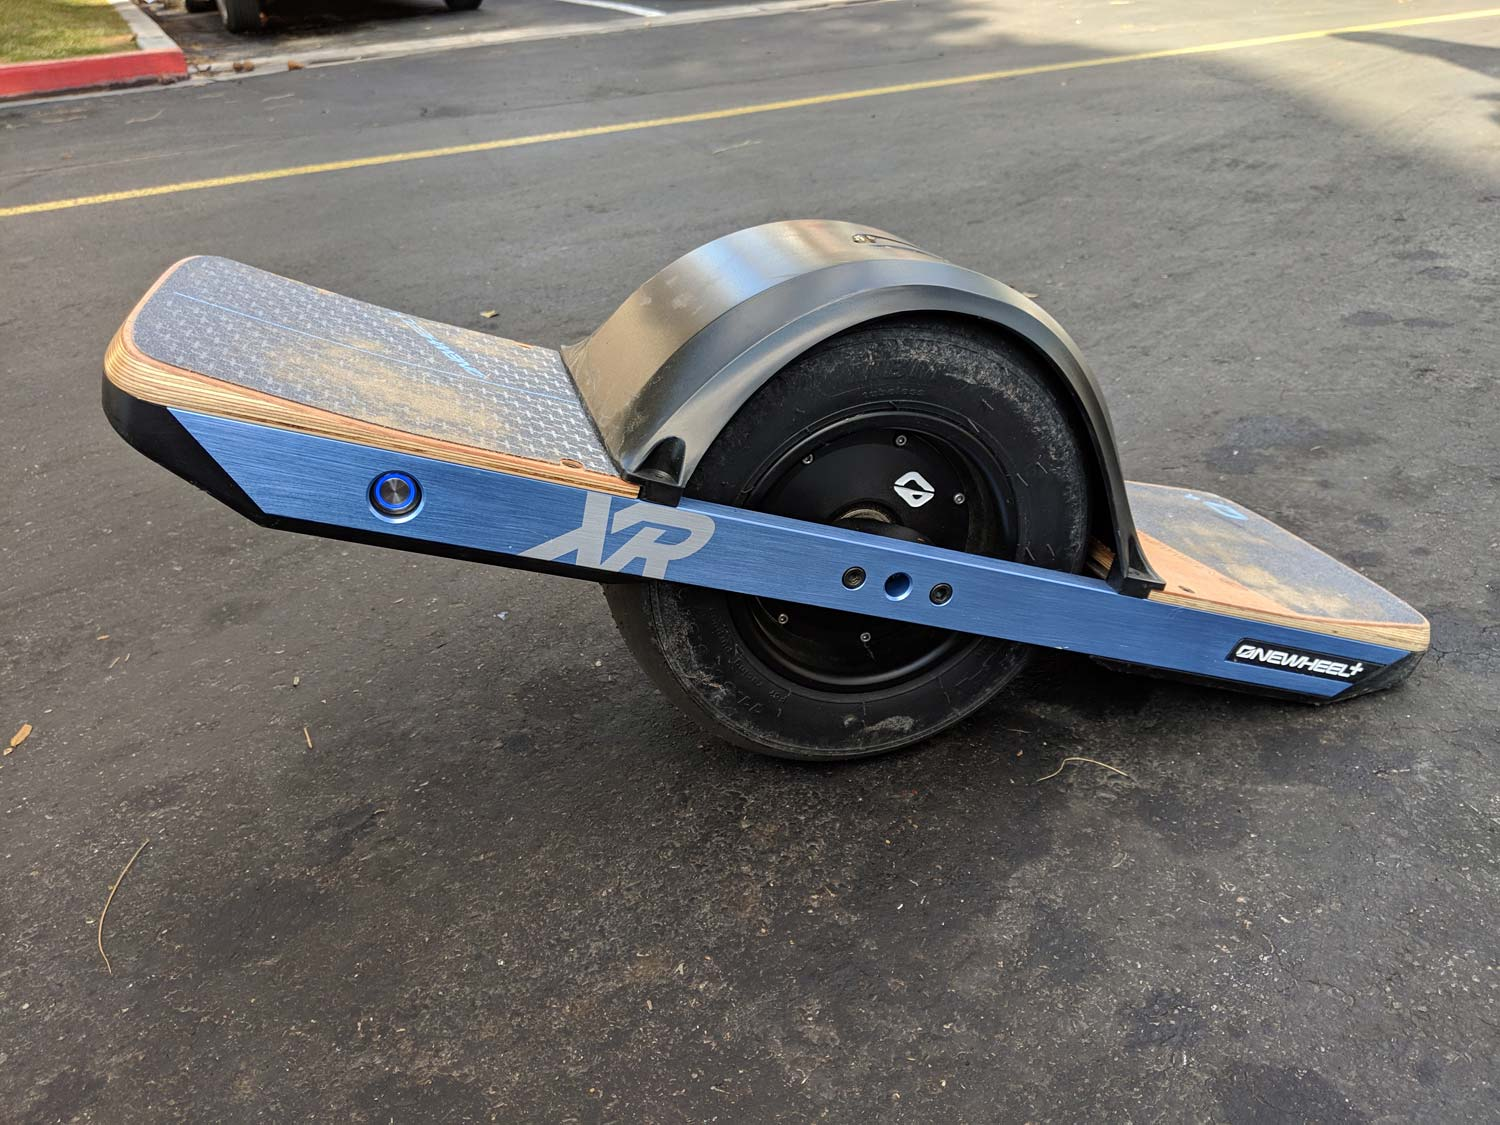 I Rode a Onewheel Rideable for the First Time, and Lived to Tell the